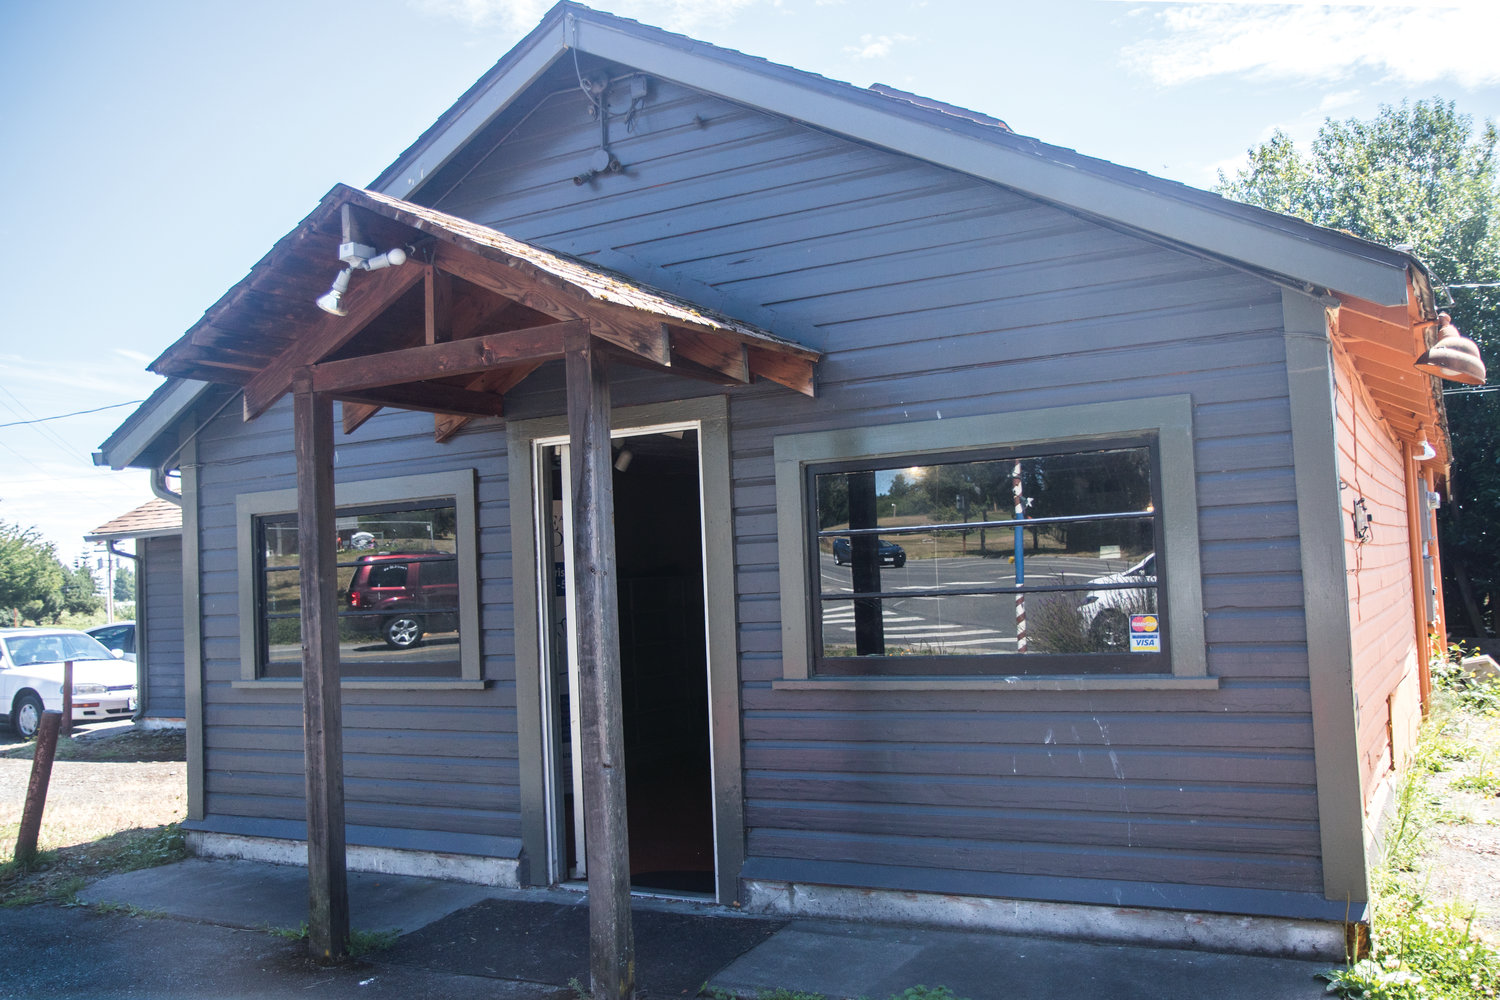 The building at 939 Kearney Street in Port Townsend was the home of Candace's Cookies for many years. Now, it is planned to be a Recovery Cafe, to support those in recovery from substance abuse, homelessness, mental illness and trauma.